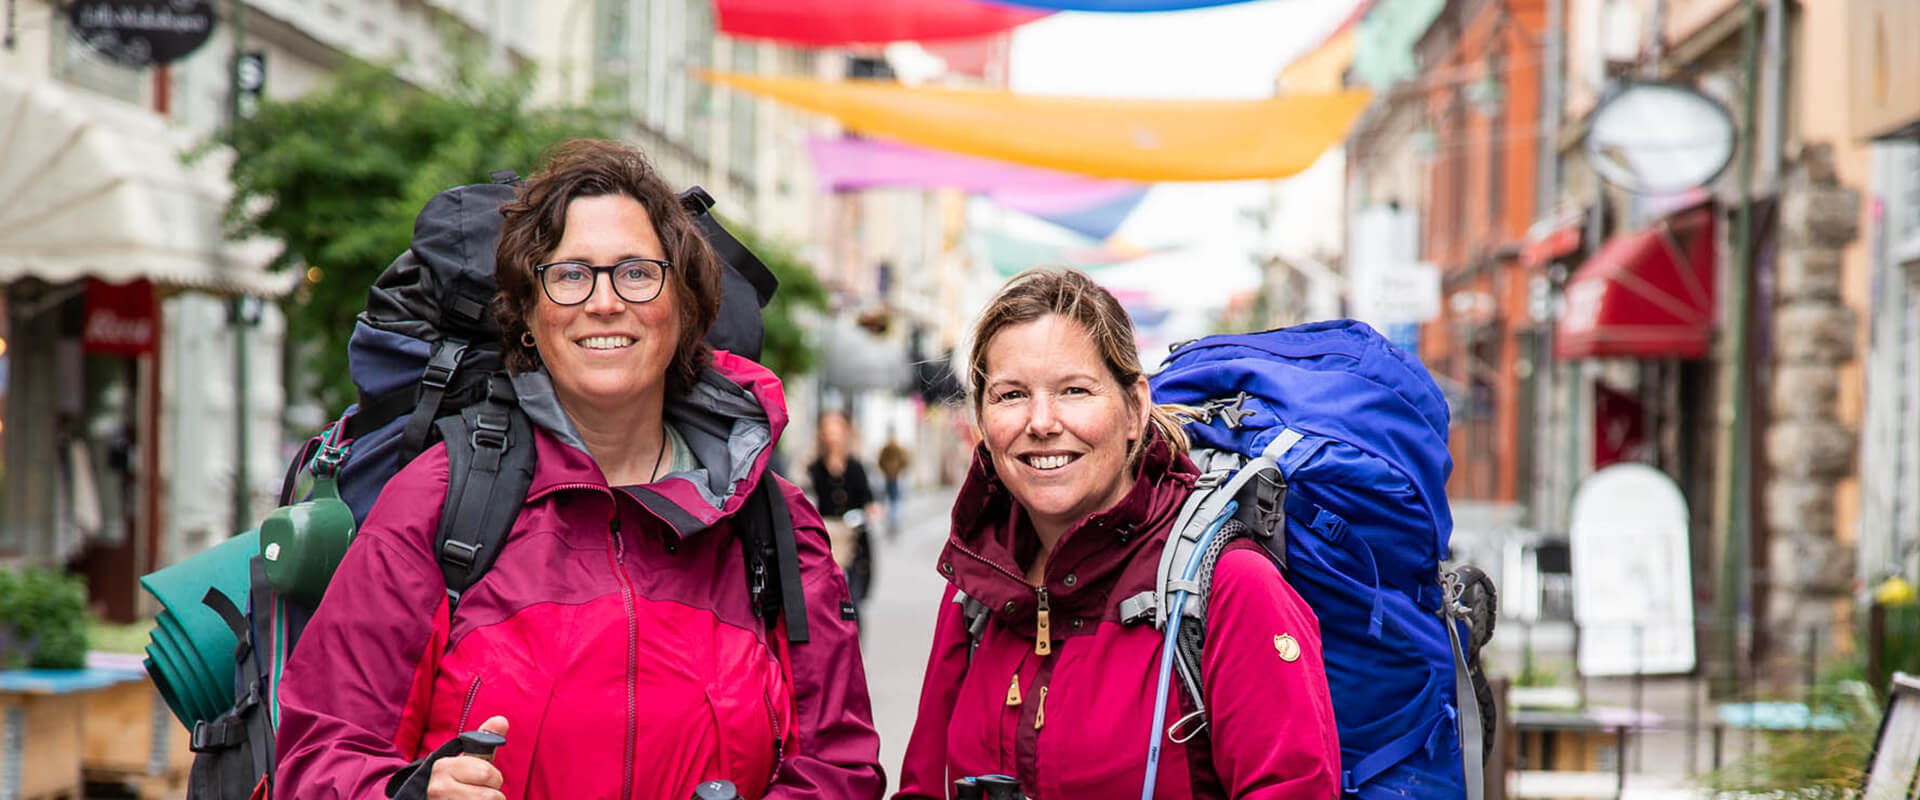 Two women with backpack in a city